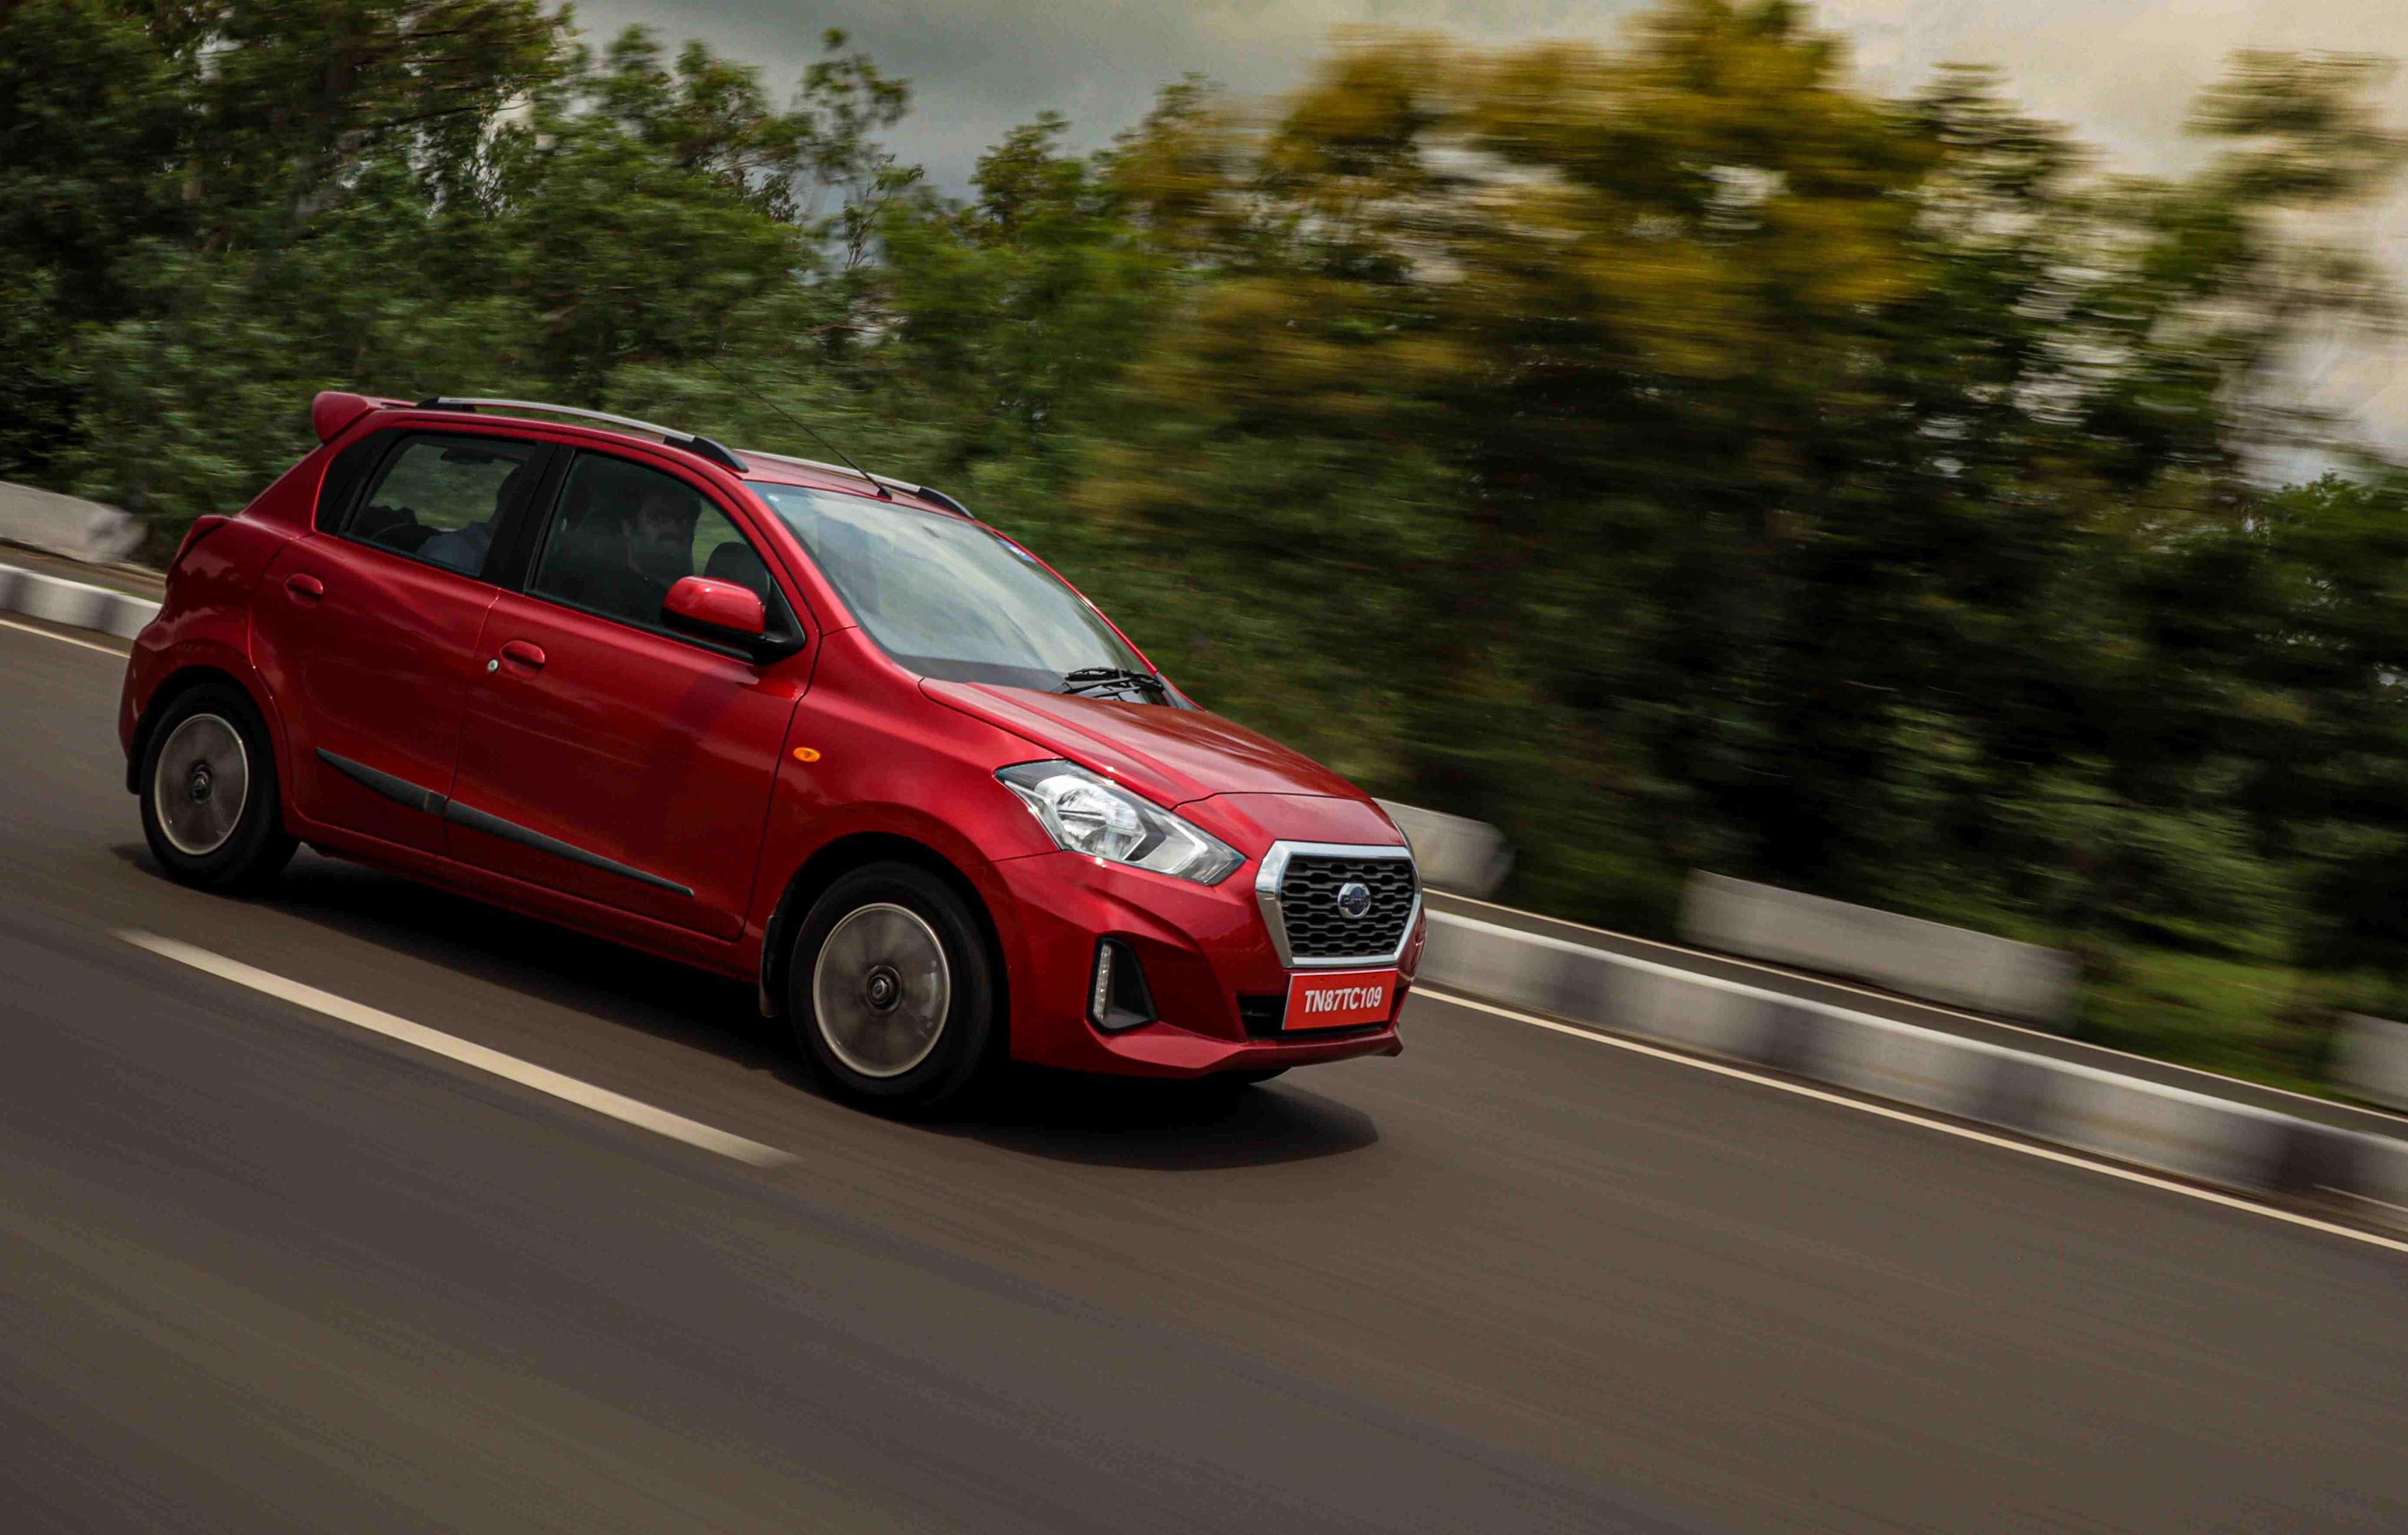 Review: Datsun Go, Go+ CVT – The most affordable CVT